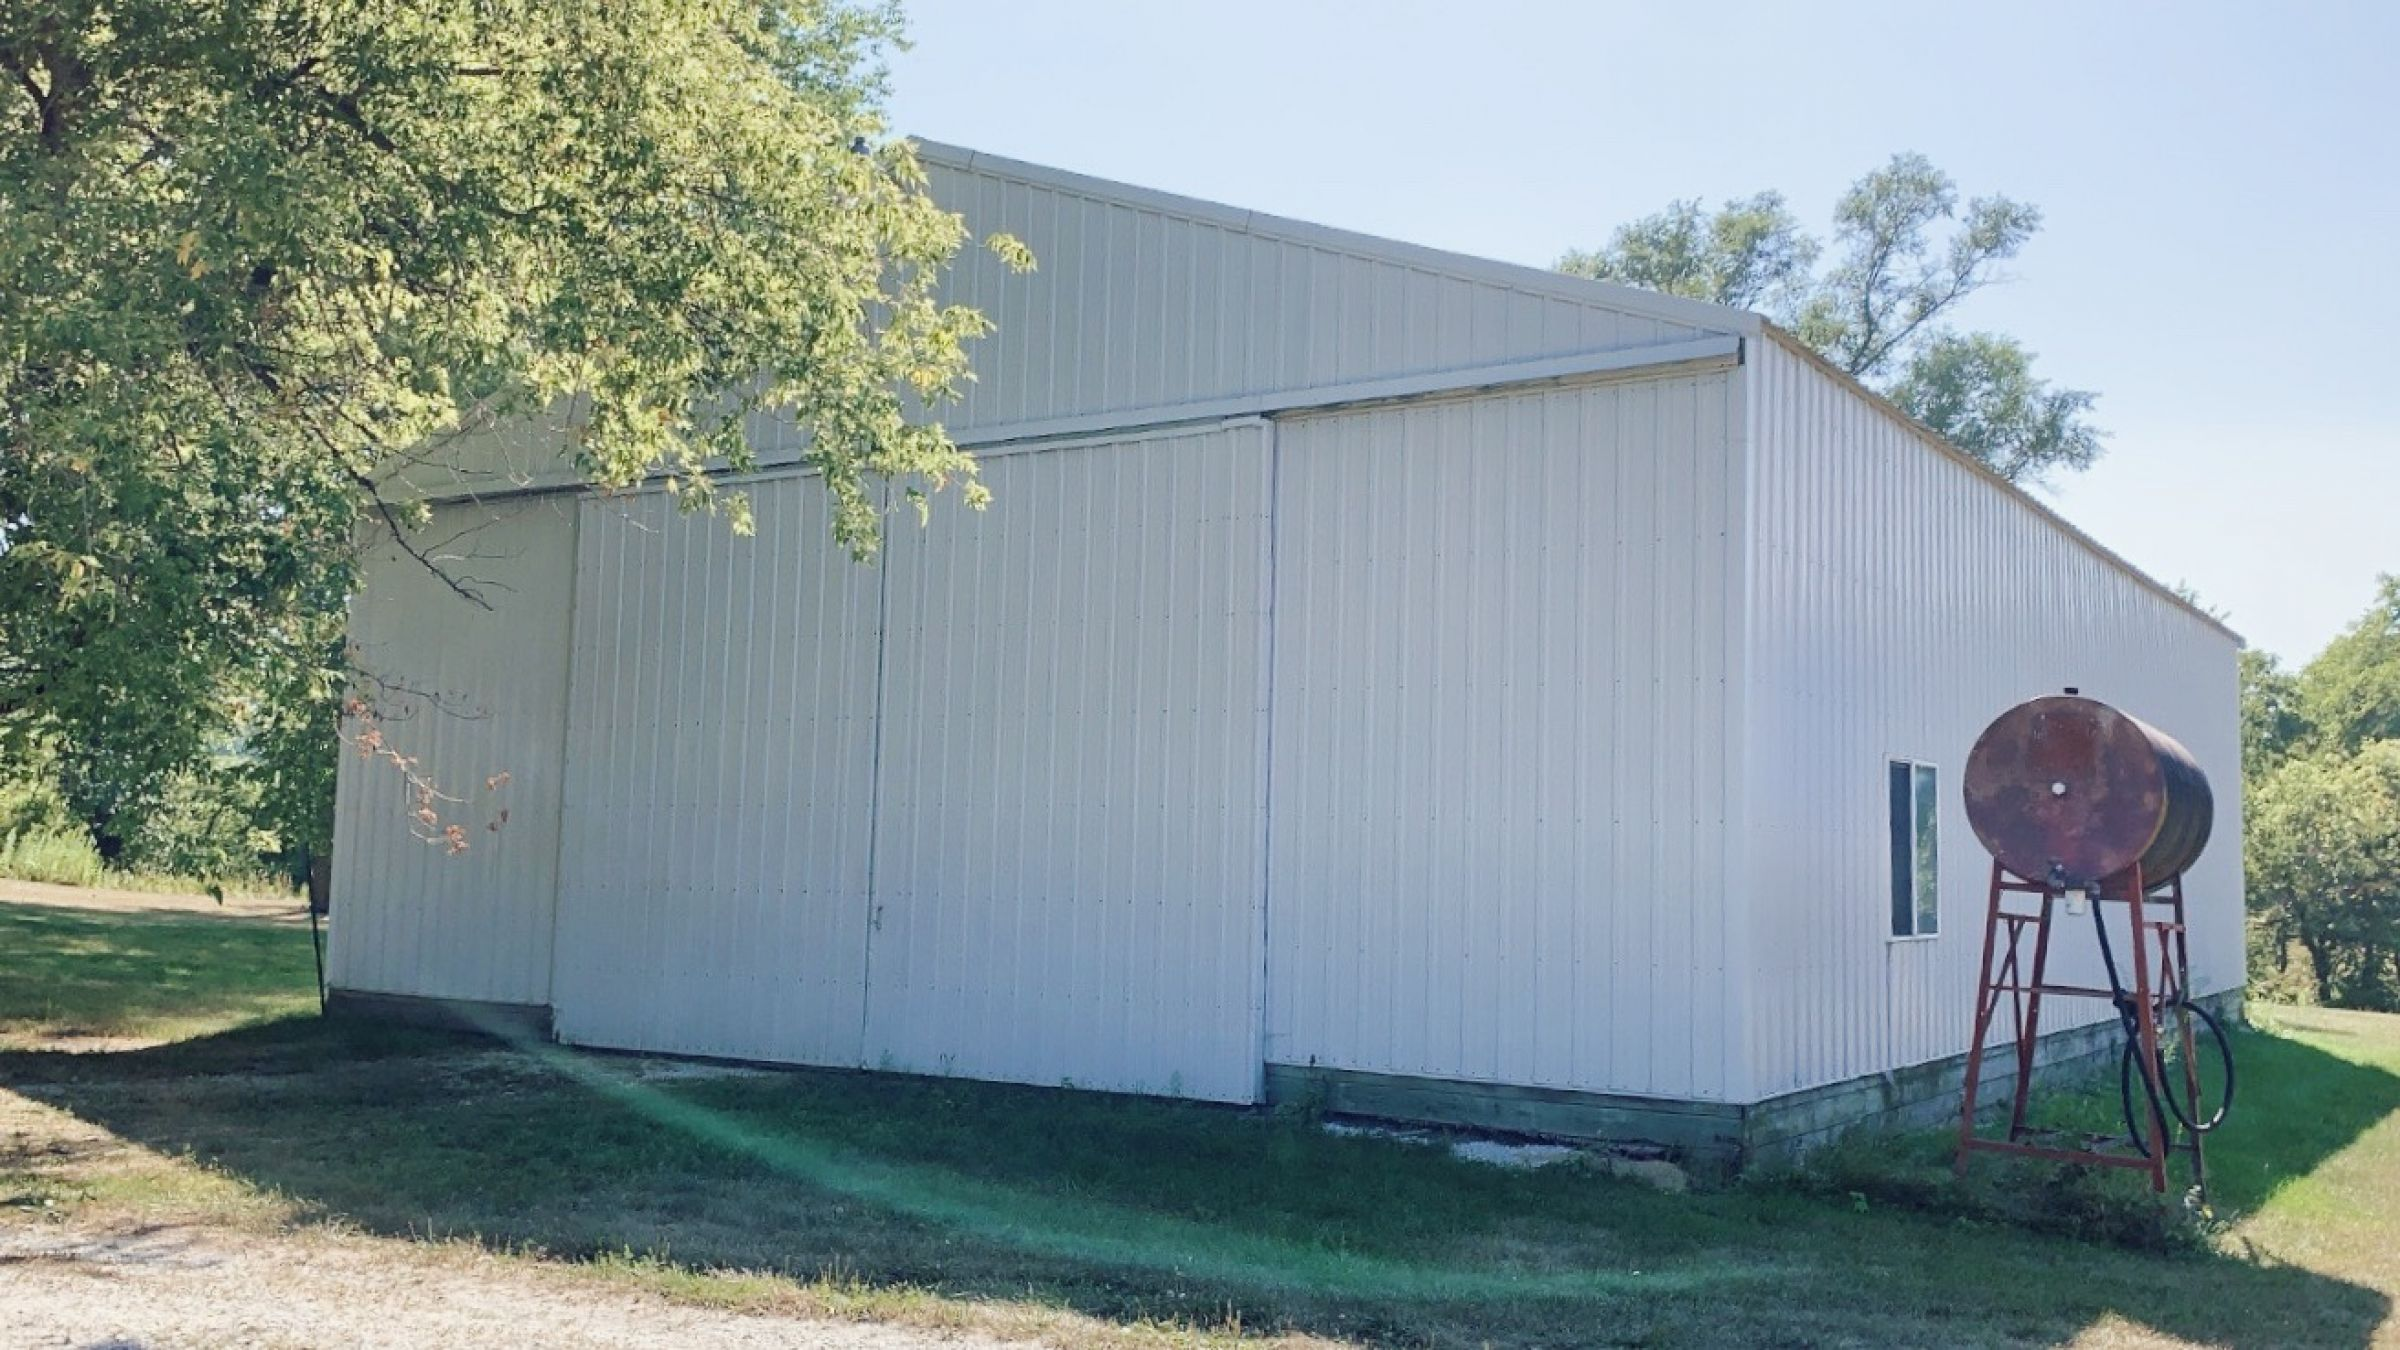 residential-madison-county-iowa-5-acres-listing-number-15408-1-2021-03-11-160726.jpg